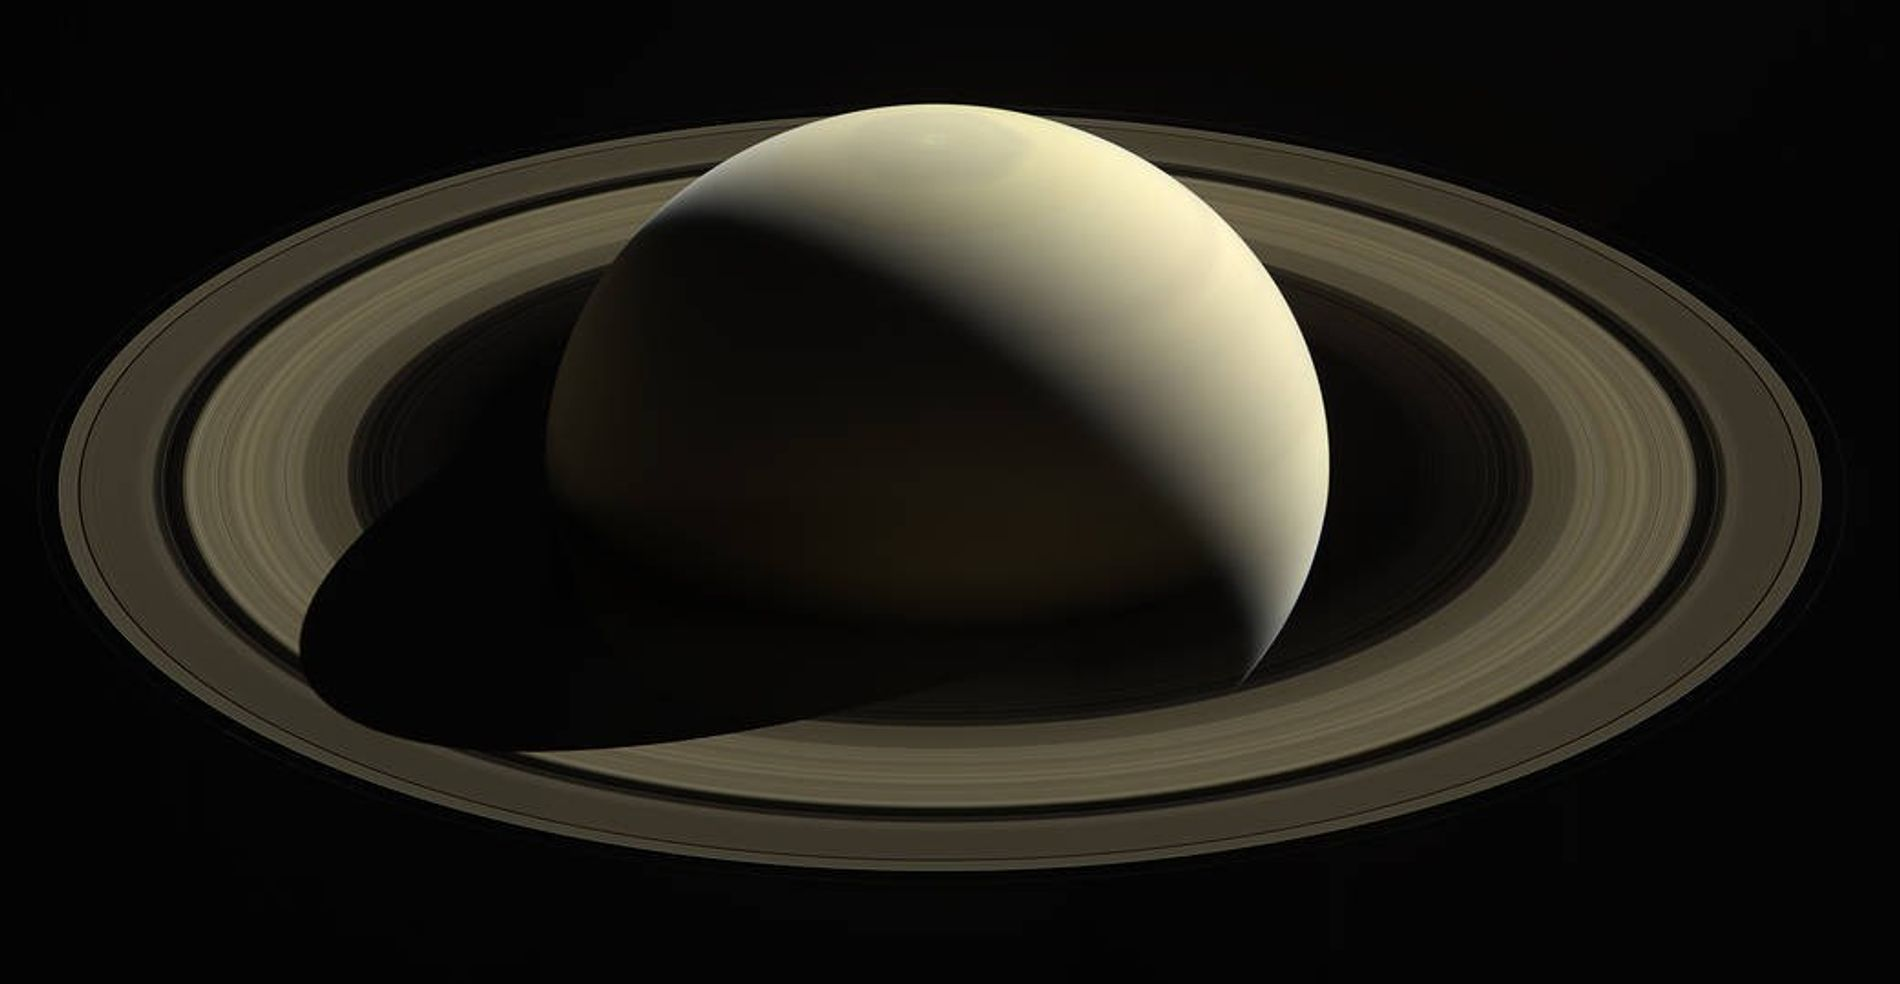 In October 2016, NASA's Cassini spacecraft captured its last looks at Saturn and its main rings. ...